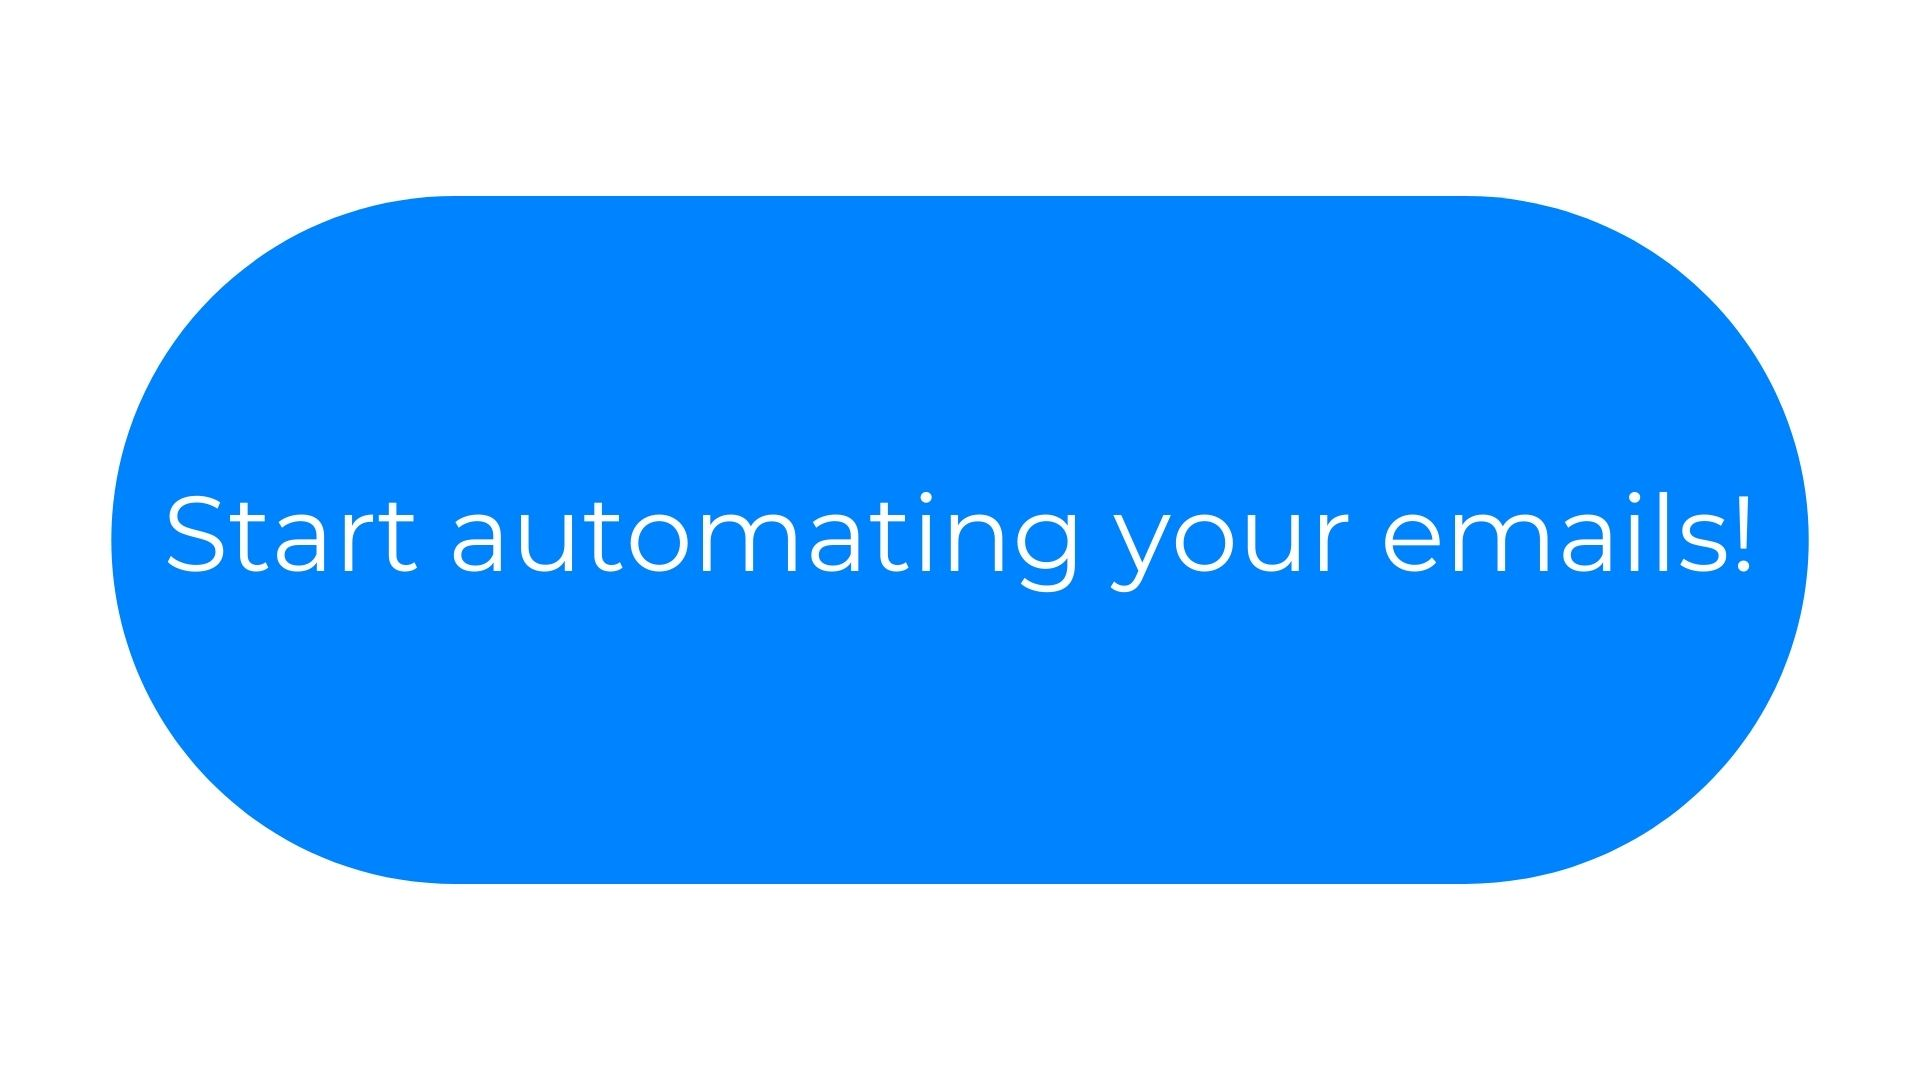 Start automating your emails